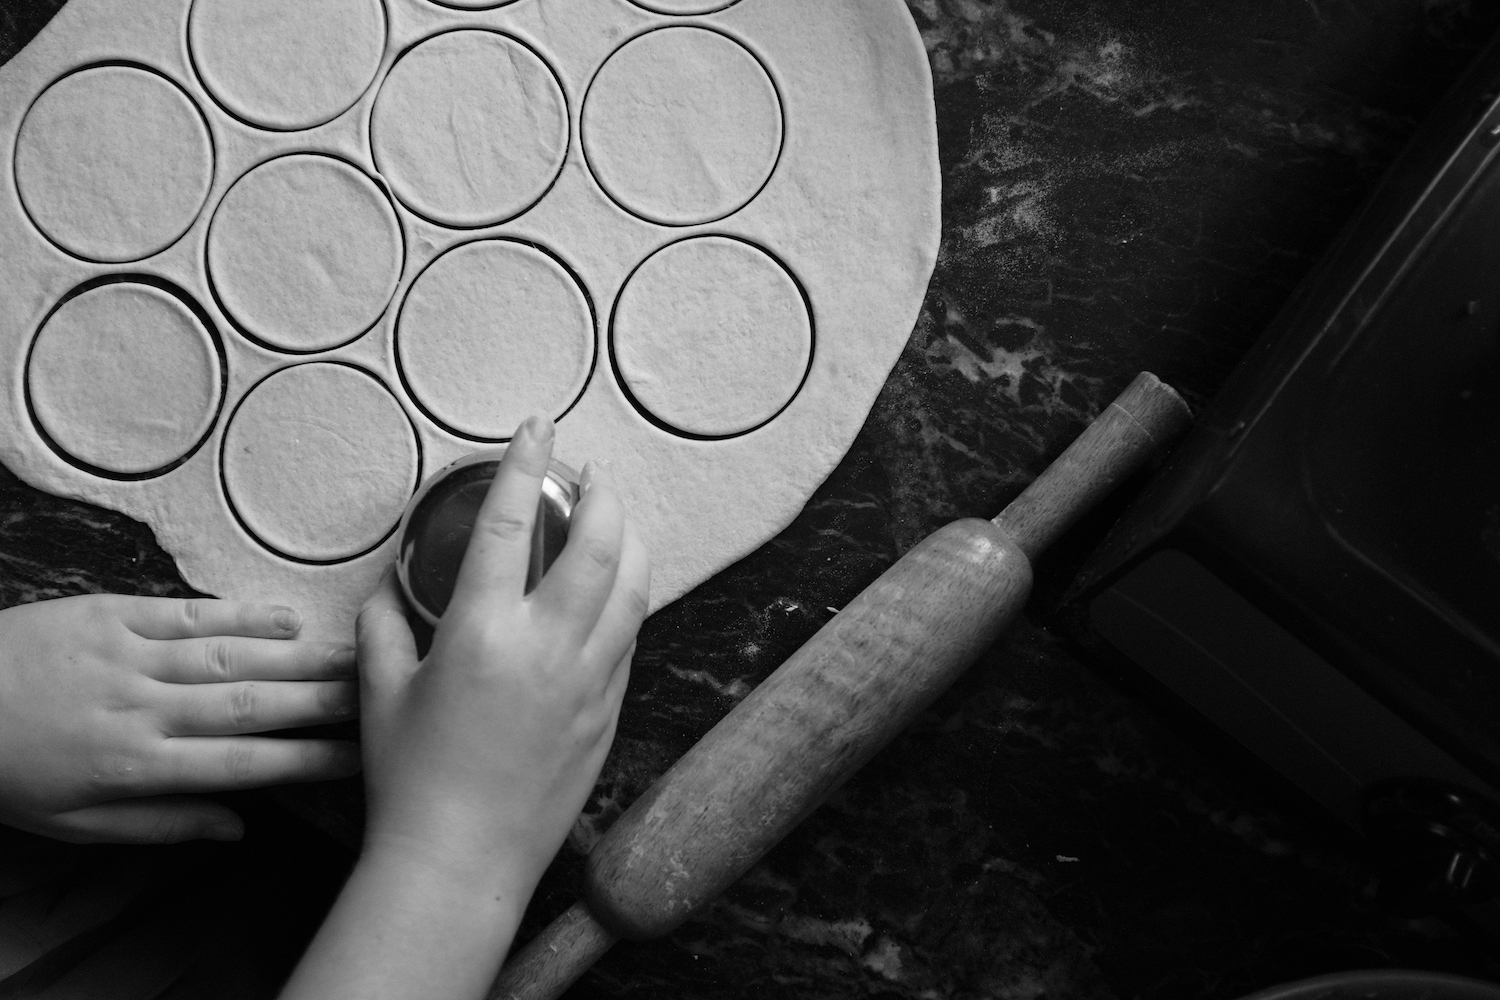 Rolled dough being cut into round shape using a small metal bowl